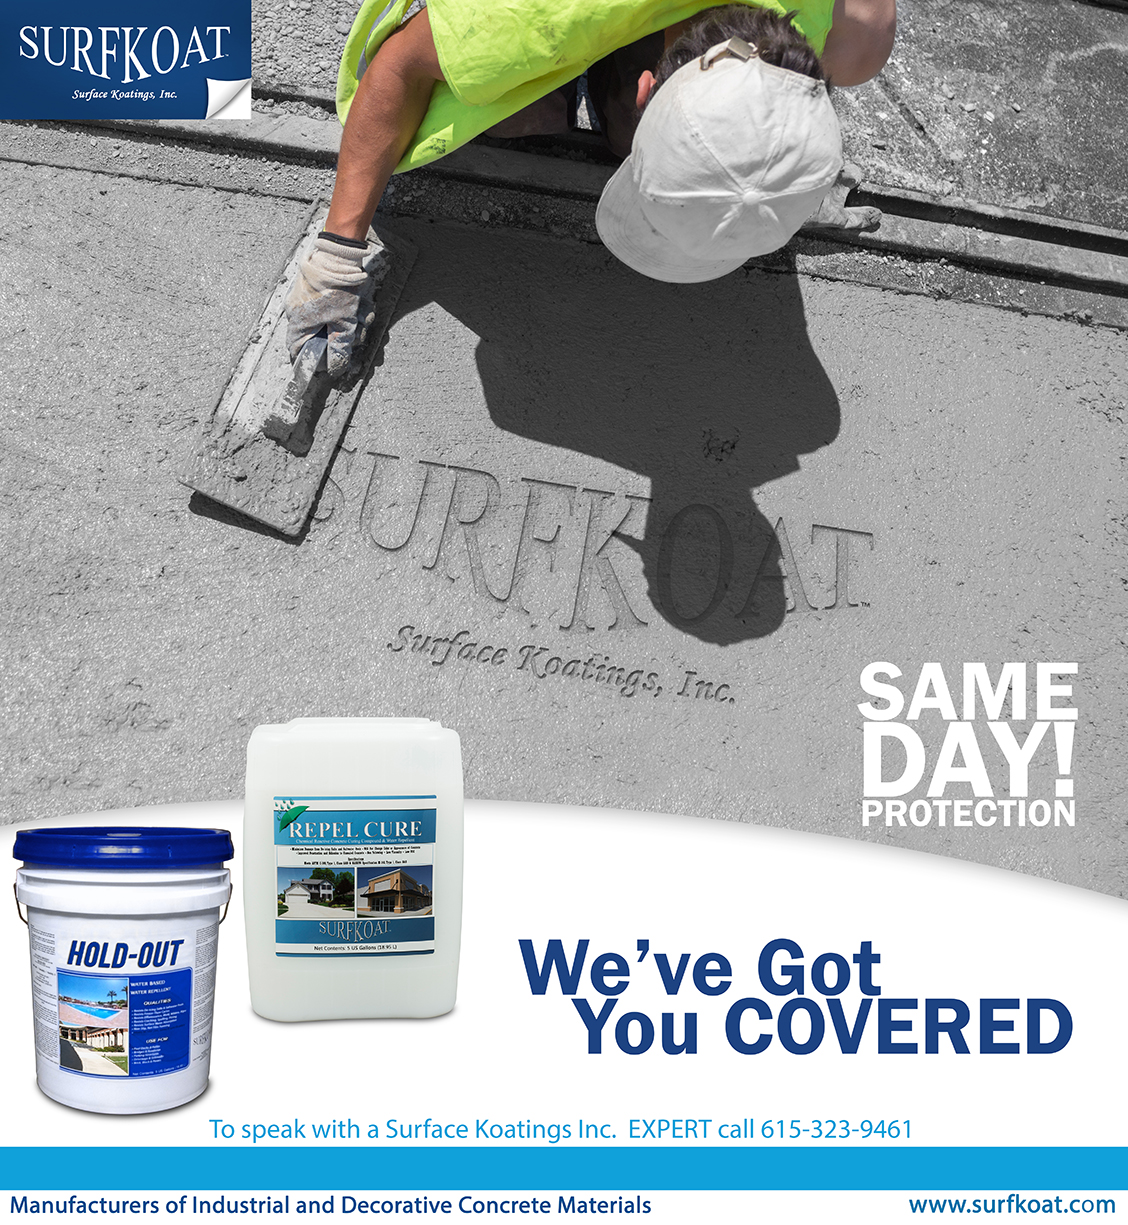 SURFKOAT™: Same Day Protection! Concrete Driveway Sealers From Surfkoat